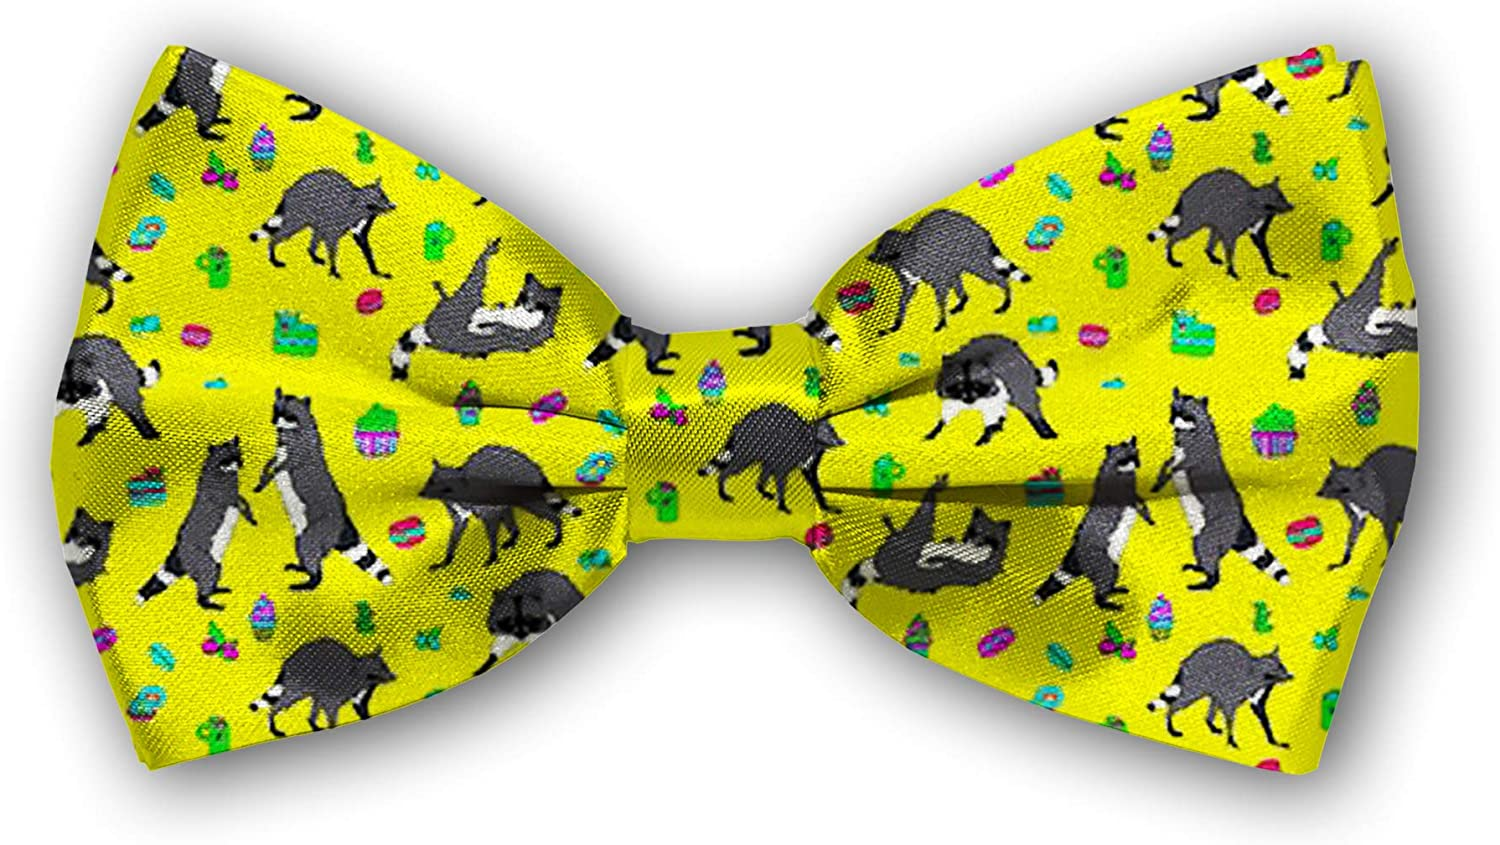 Bow Tie Tuxedo Butterfly Cotton Bowtie for Adjustable Mens Boys Max 79% OFF OFFicial site